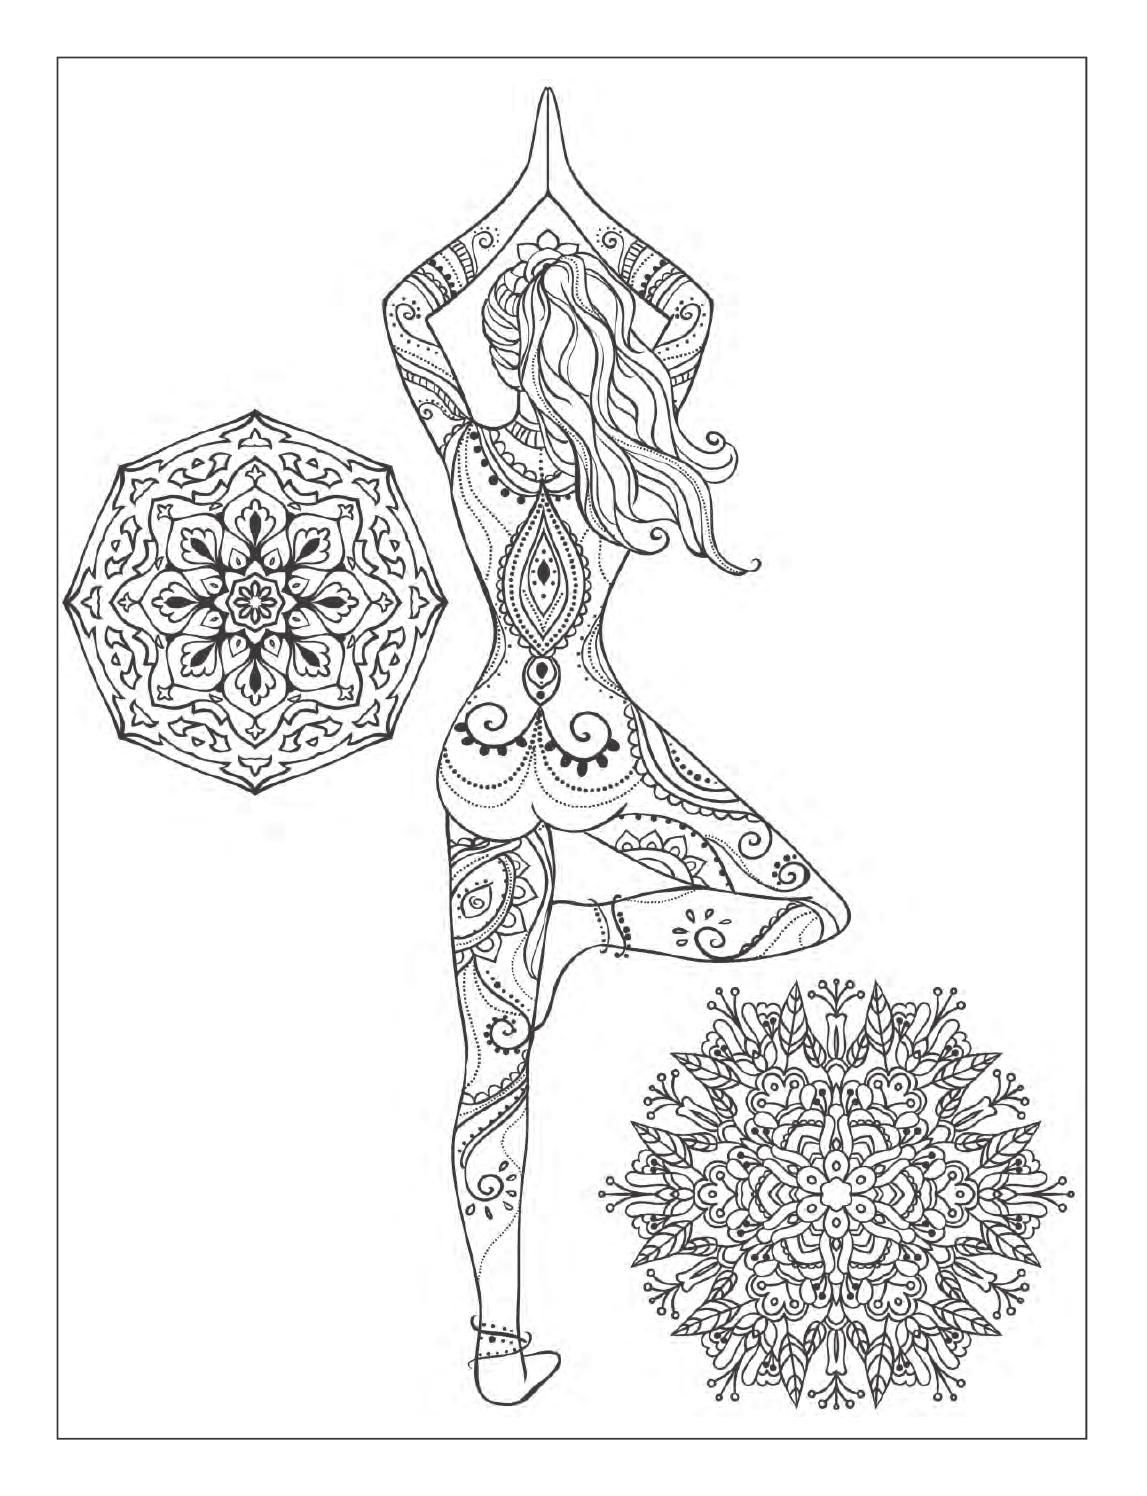 meditation through creation coloring books geopatterns